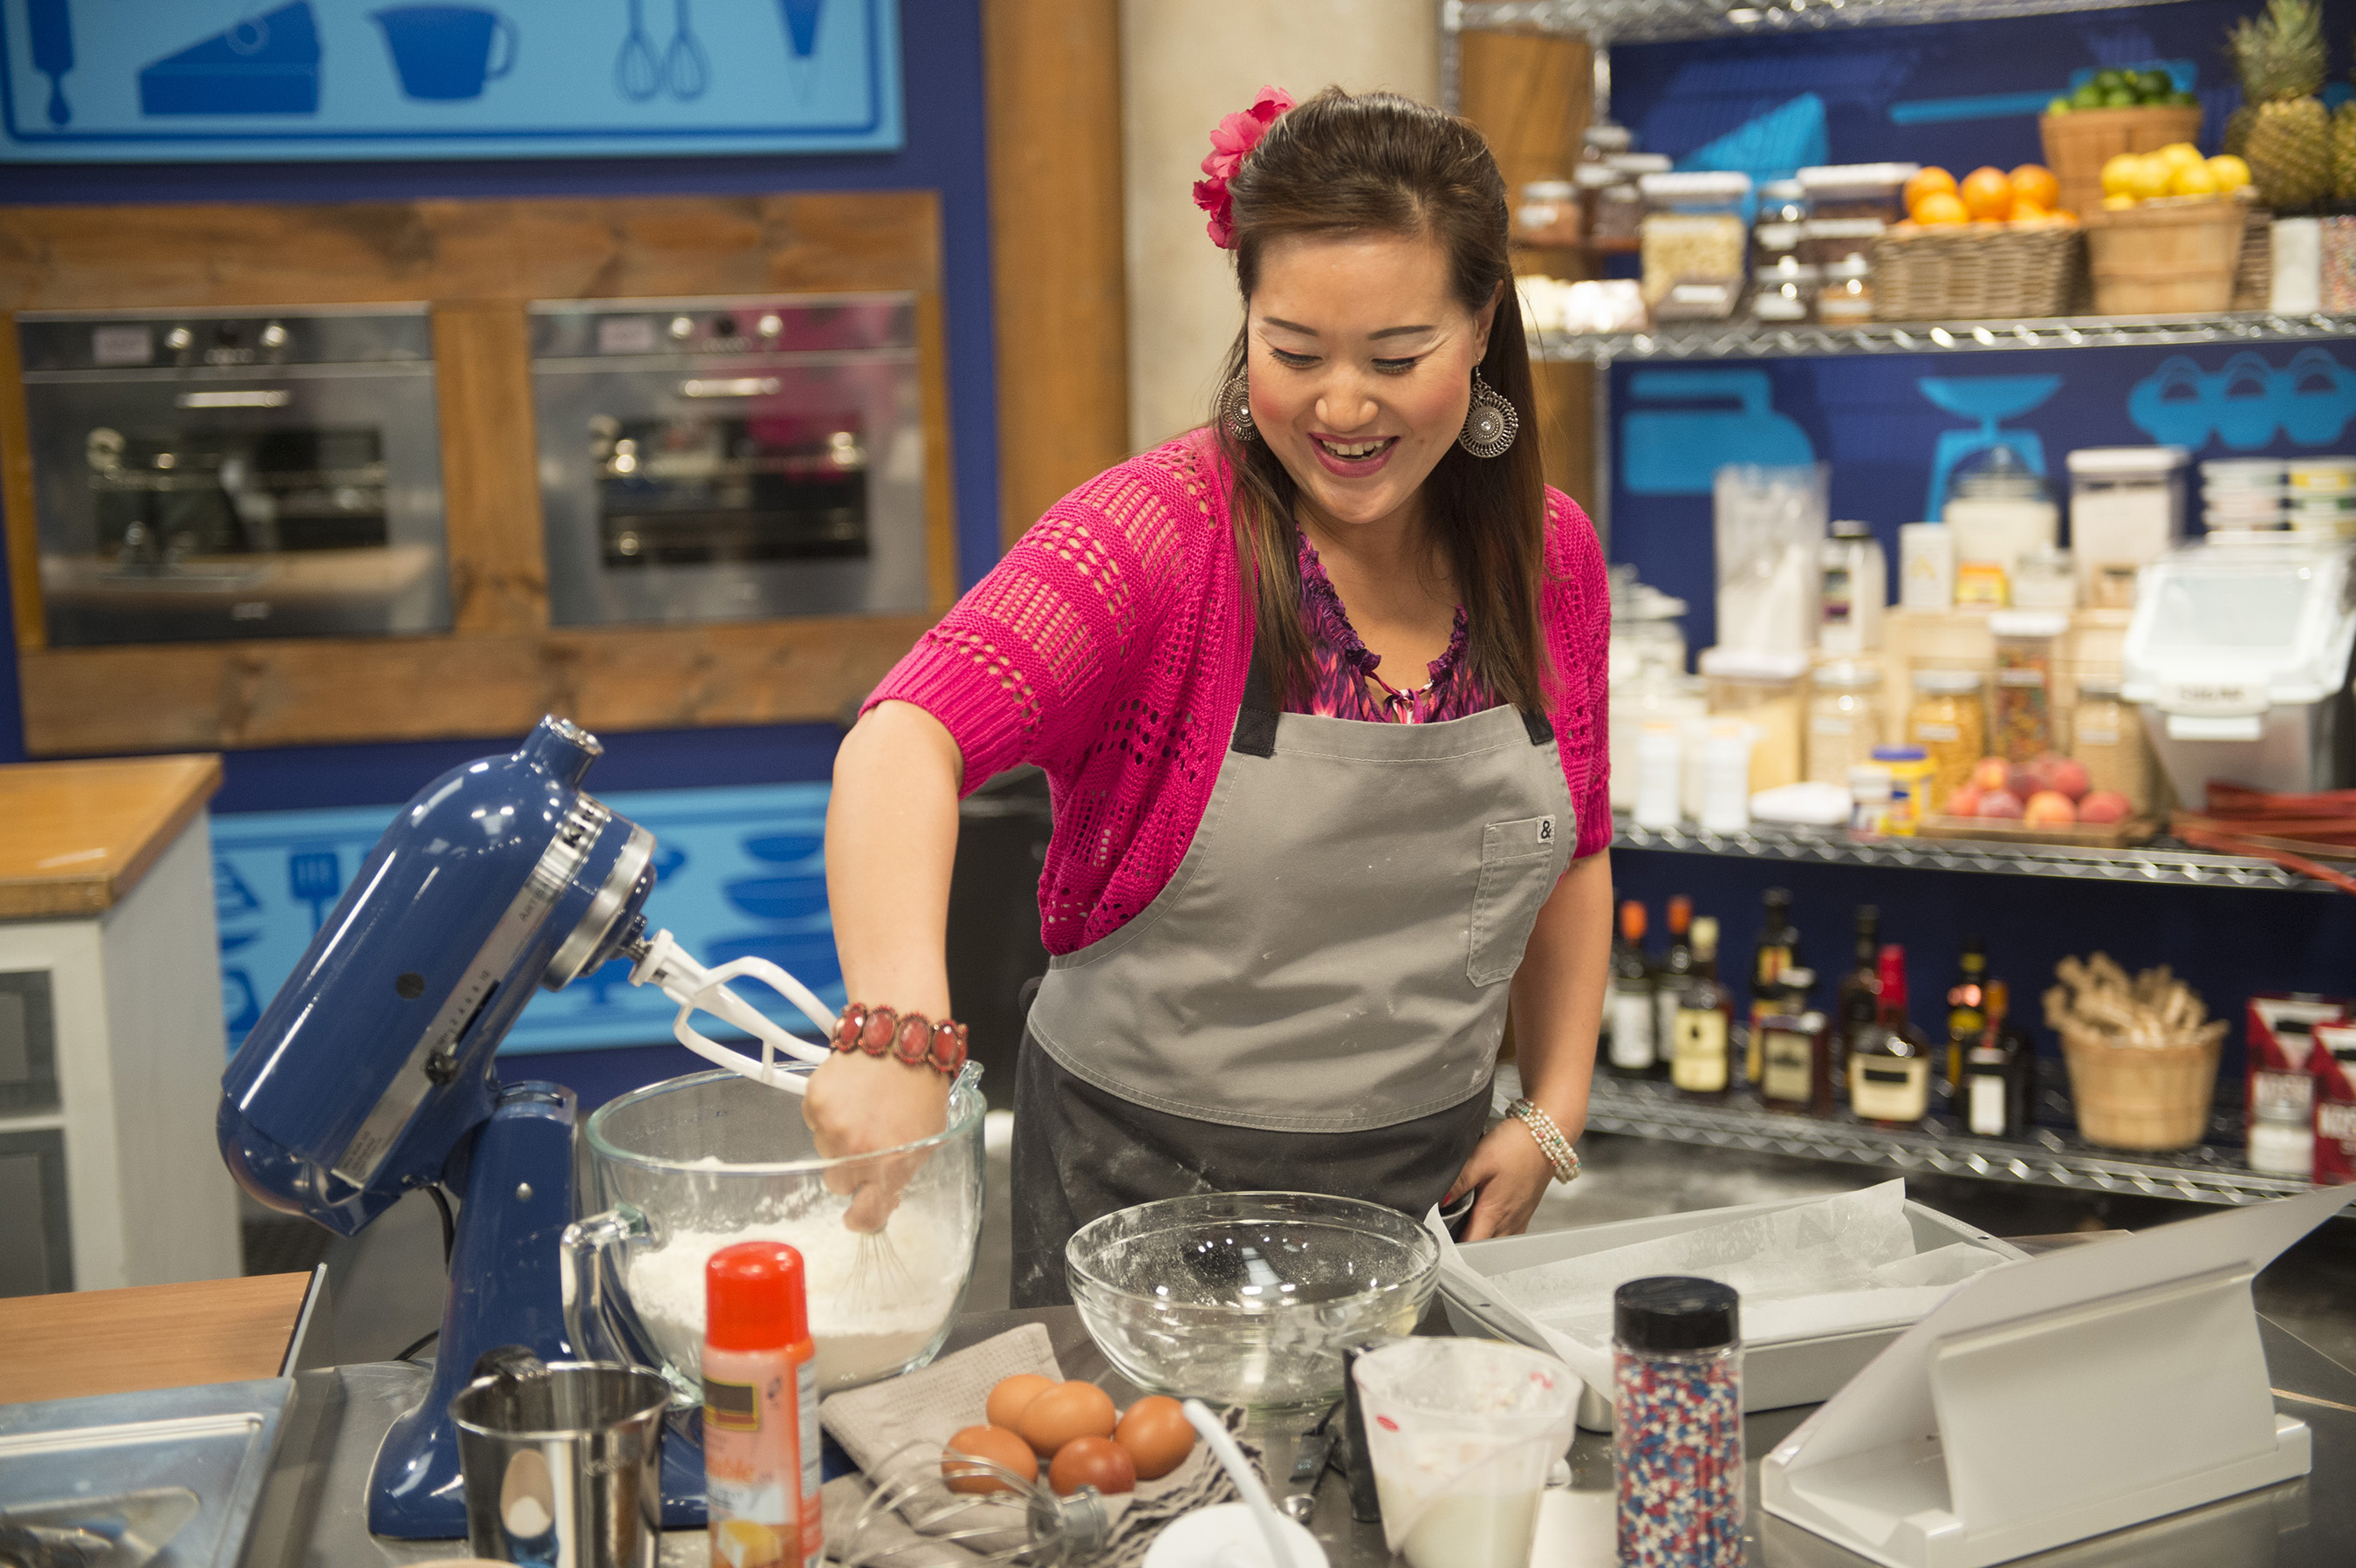 Competitor Lizzy Lu works to complete her dish on Food Network's Worst Bakers in America